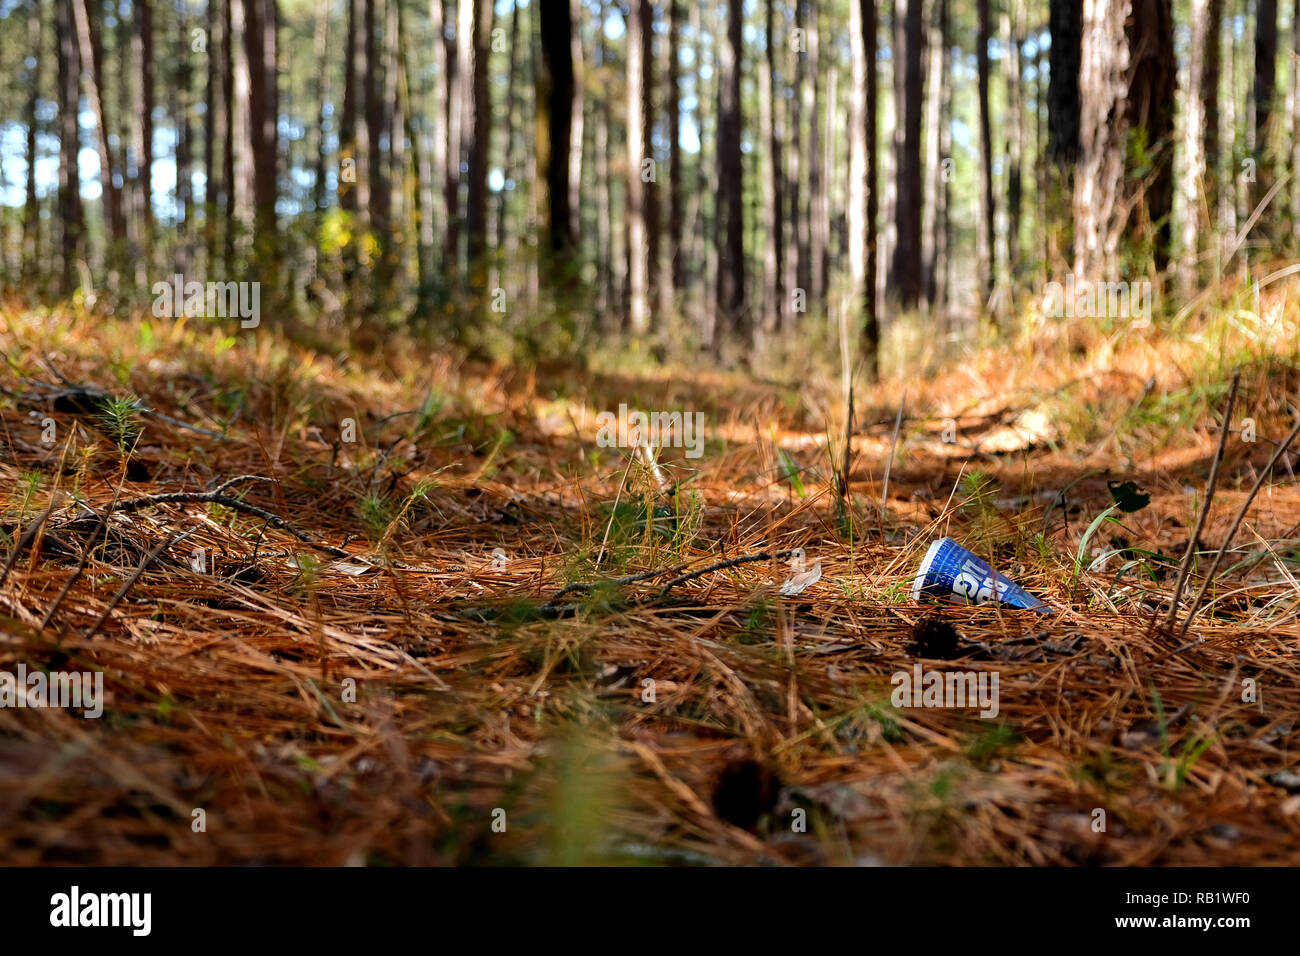 Empty beer can thrown on the ground amid pine needles at the Sam Houston National Forest in Texas; aluminum pollution; trash in nature. - Stock Image